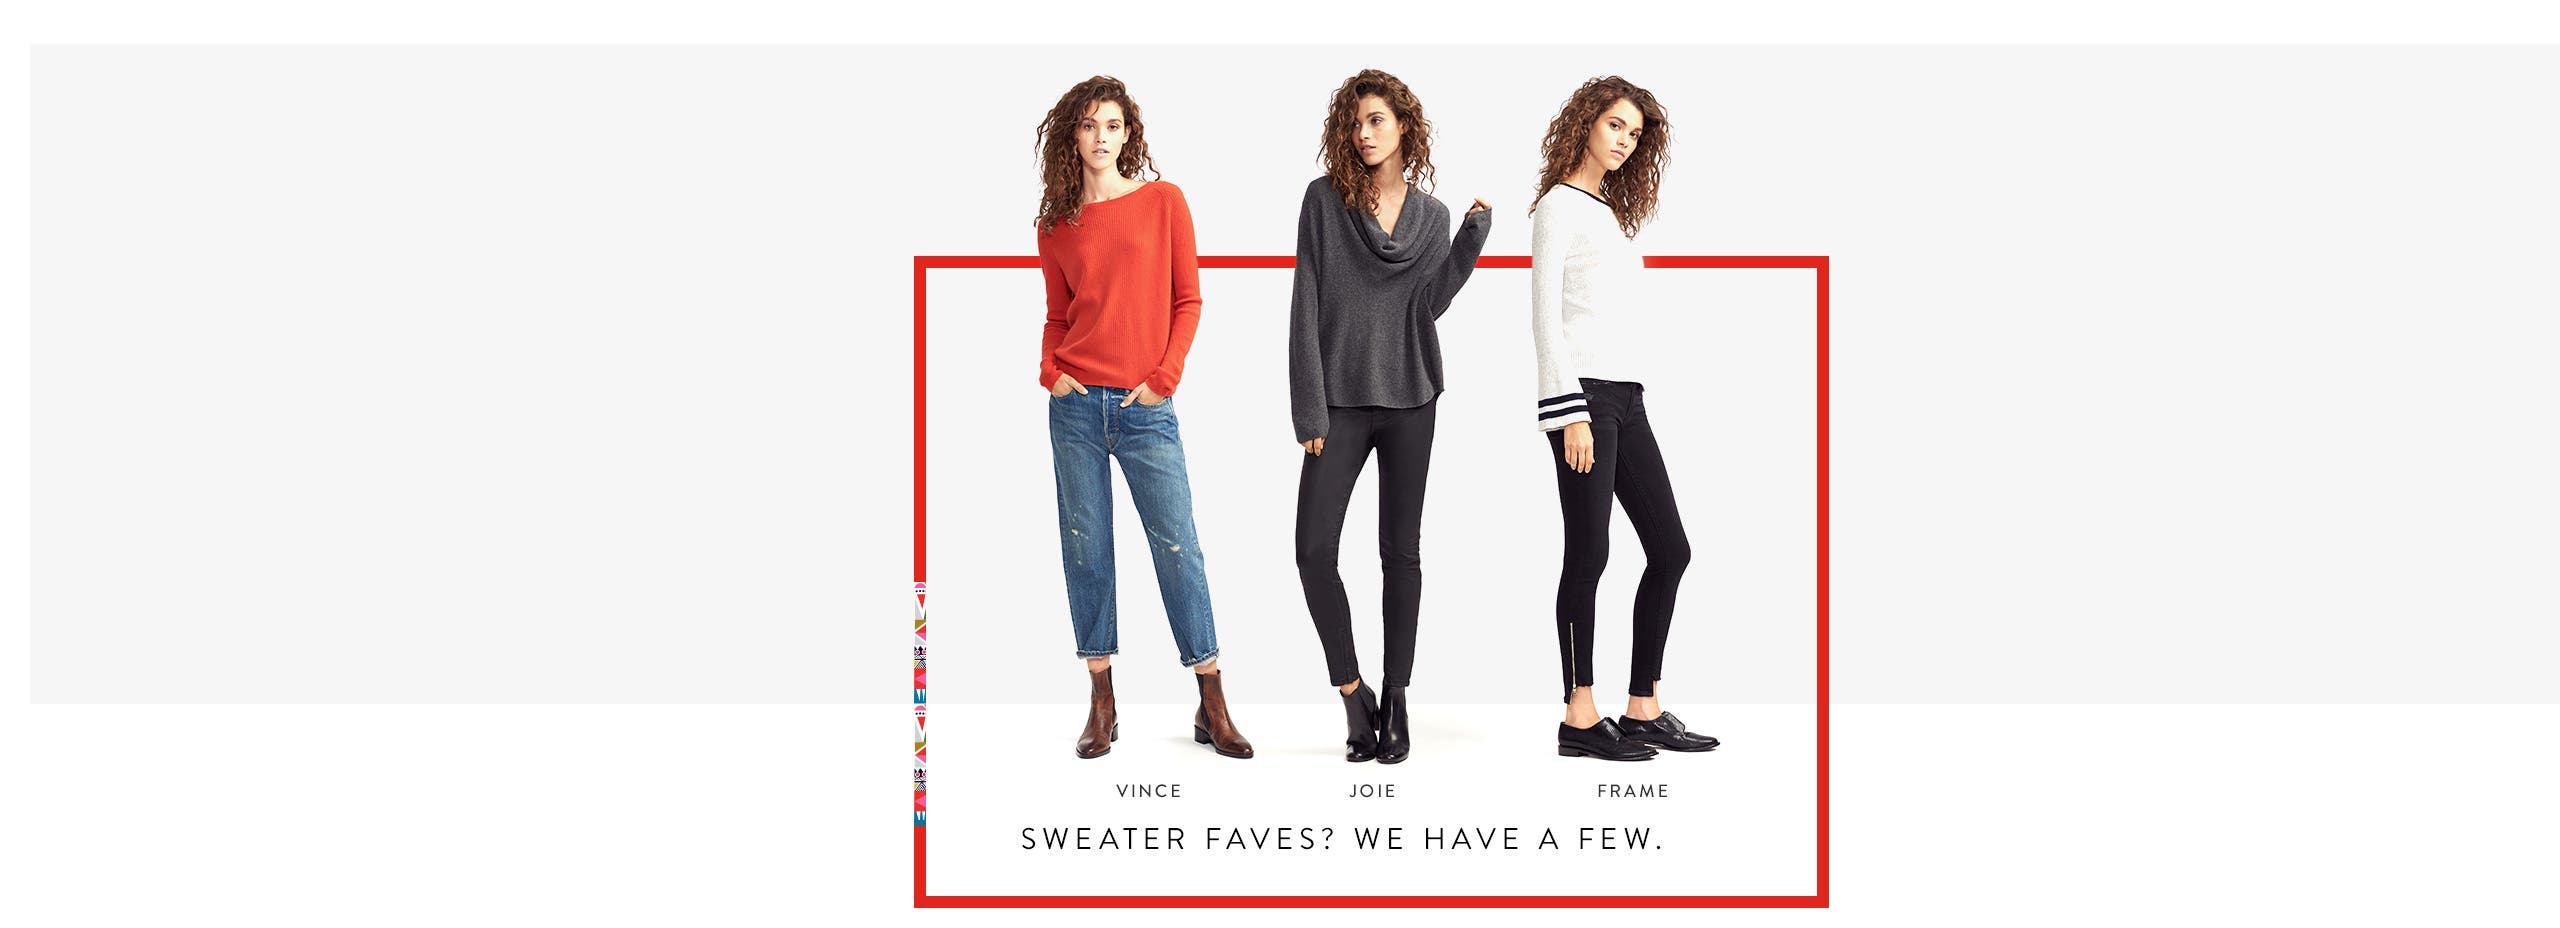 Sweater faves? We have a few from Vince, Joie, FRAME and more.